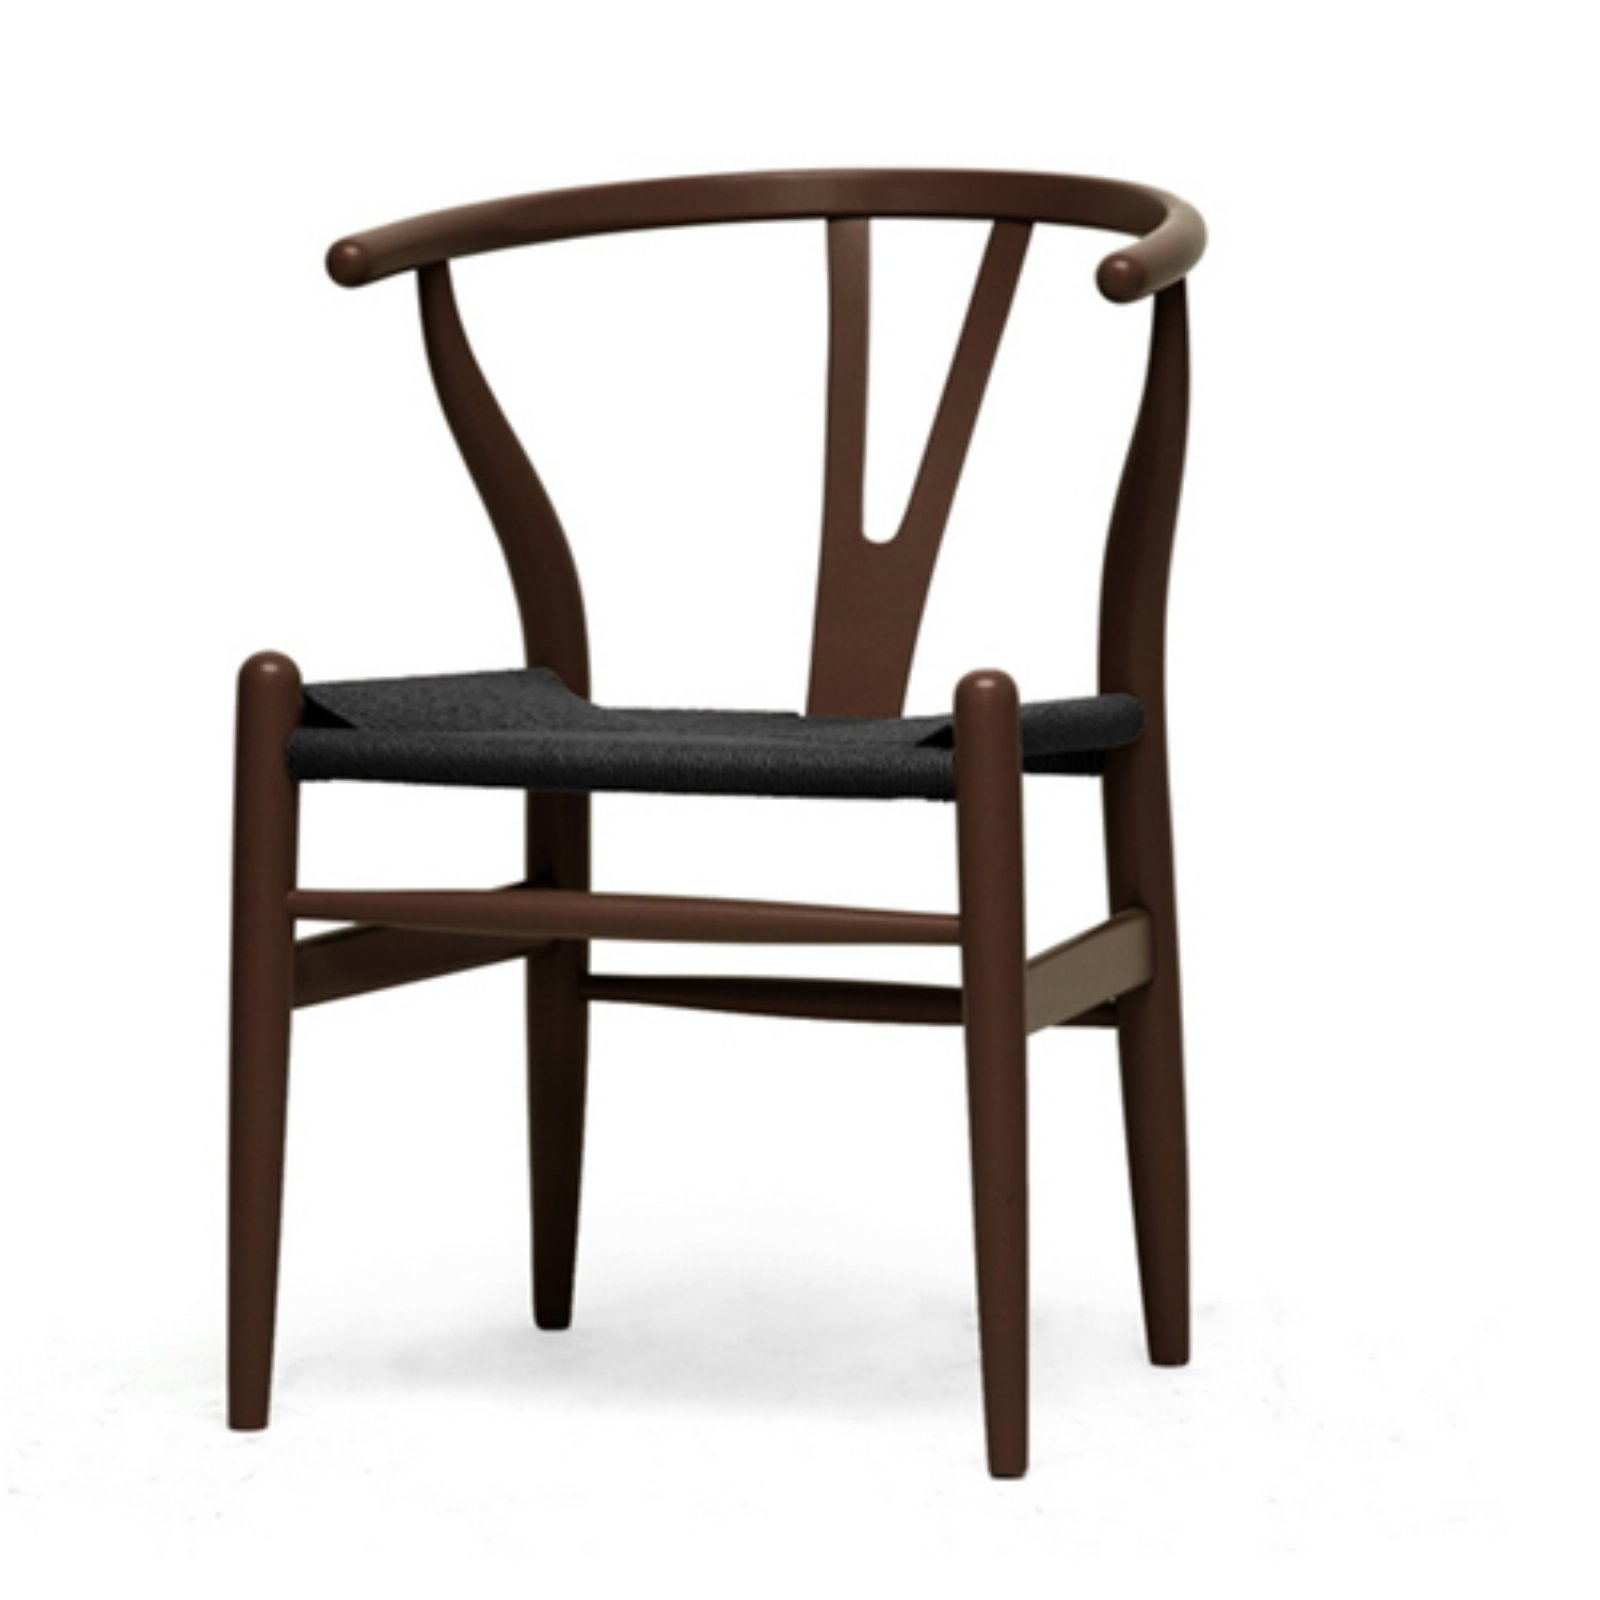 Baxton Studio Wishbone Arm Dining Chair